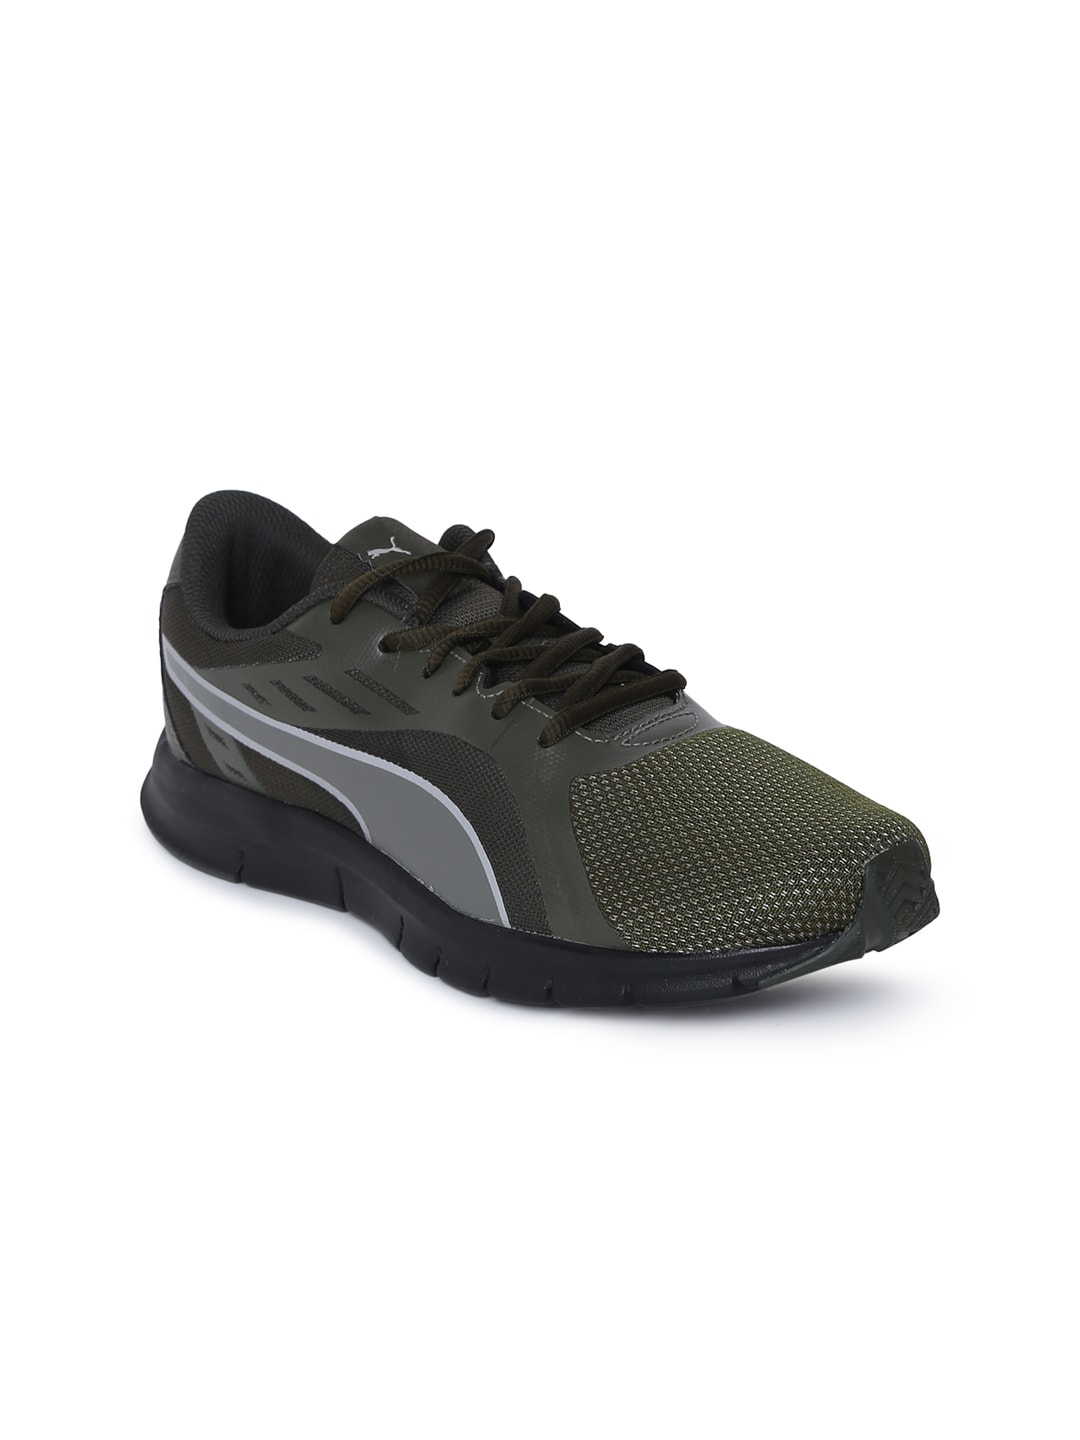 e3d97e25e57 c60be977-a75b-4a7c-bb7e-5b2bbf7ea05d1535022140844-Puma-Women-Green-Felix-Running- Shoes-6741535022140157-1.jpg